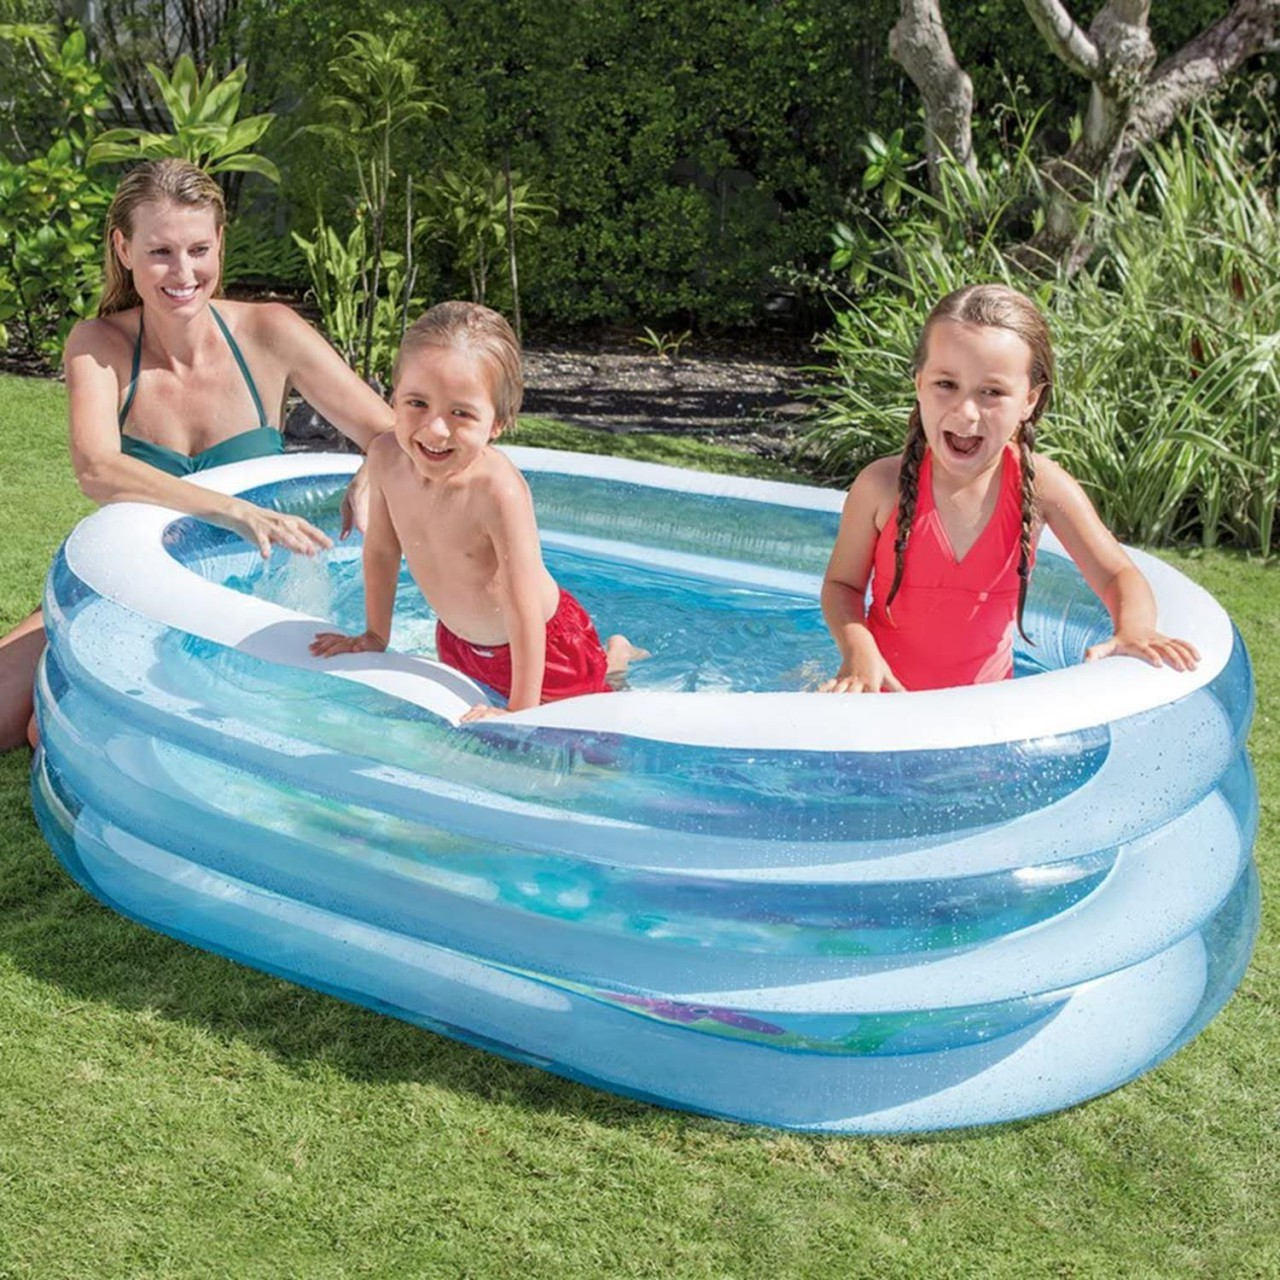 Intex 57482 Planschbecken Swimming Pool Kinderpool 163x107x46cm Oval Whale Fun